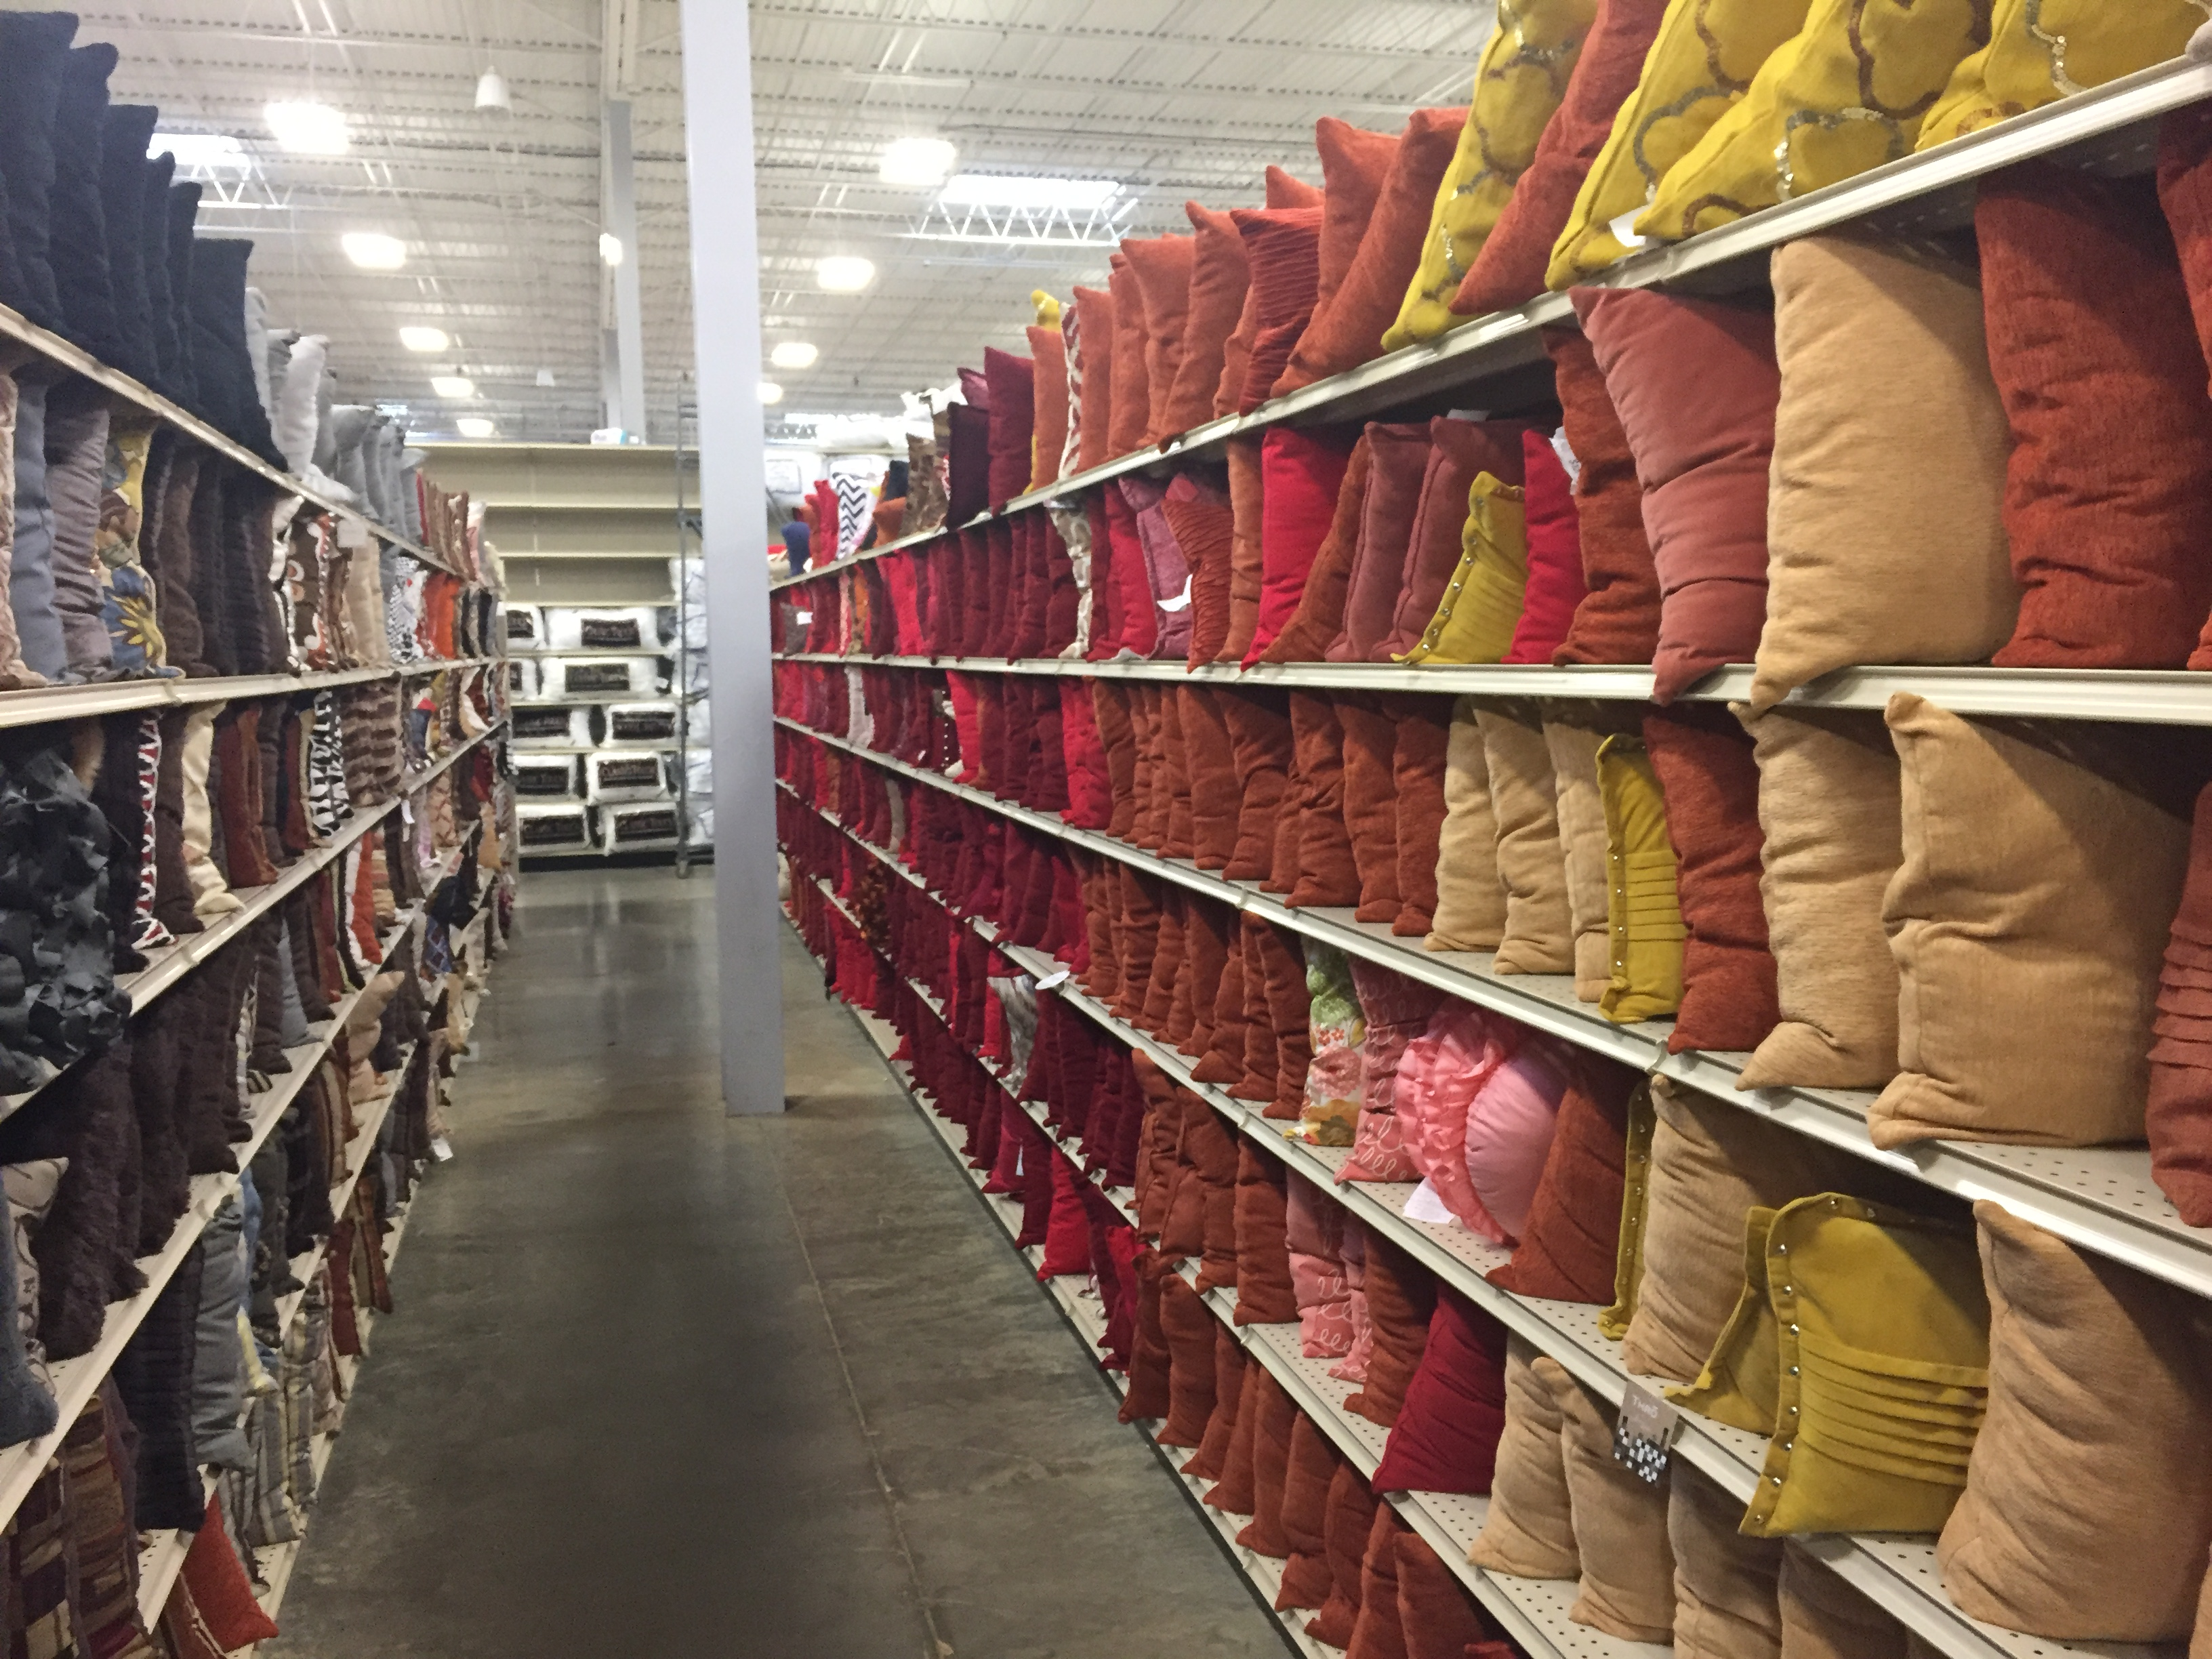 aisles of At Home throw pillows | At Home stores | throw pillows | Colors |